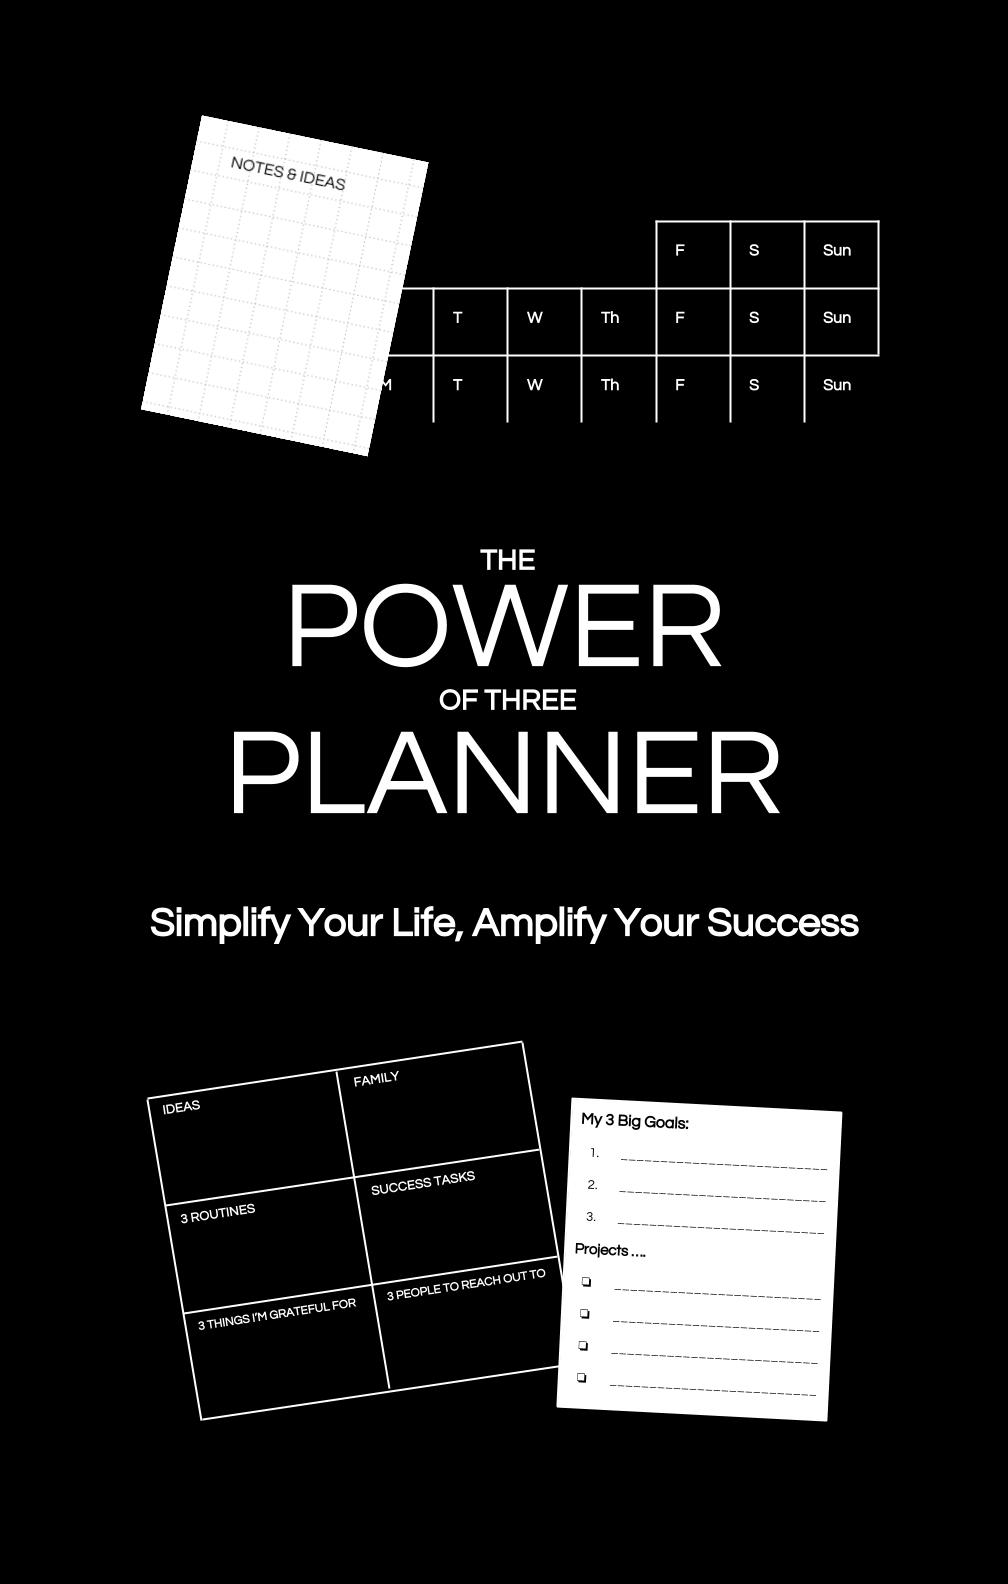 The Power of Three Planner, 232 page simple success system, PDF - FREE